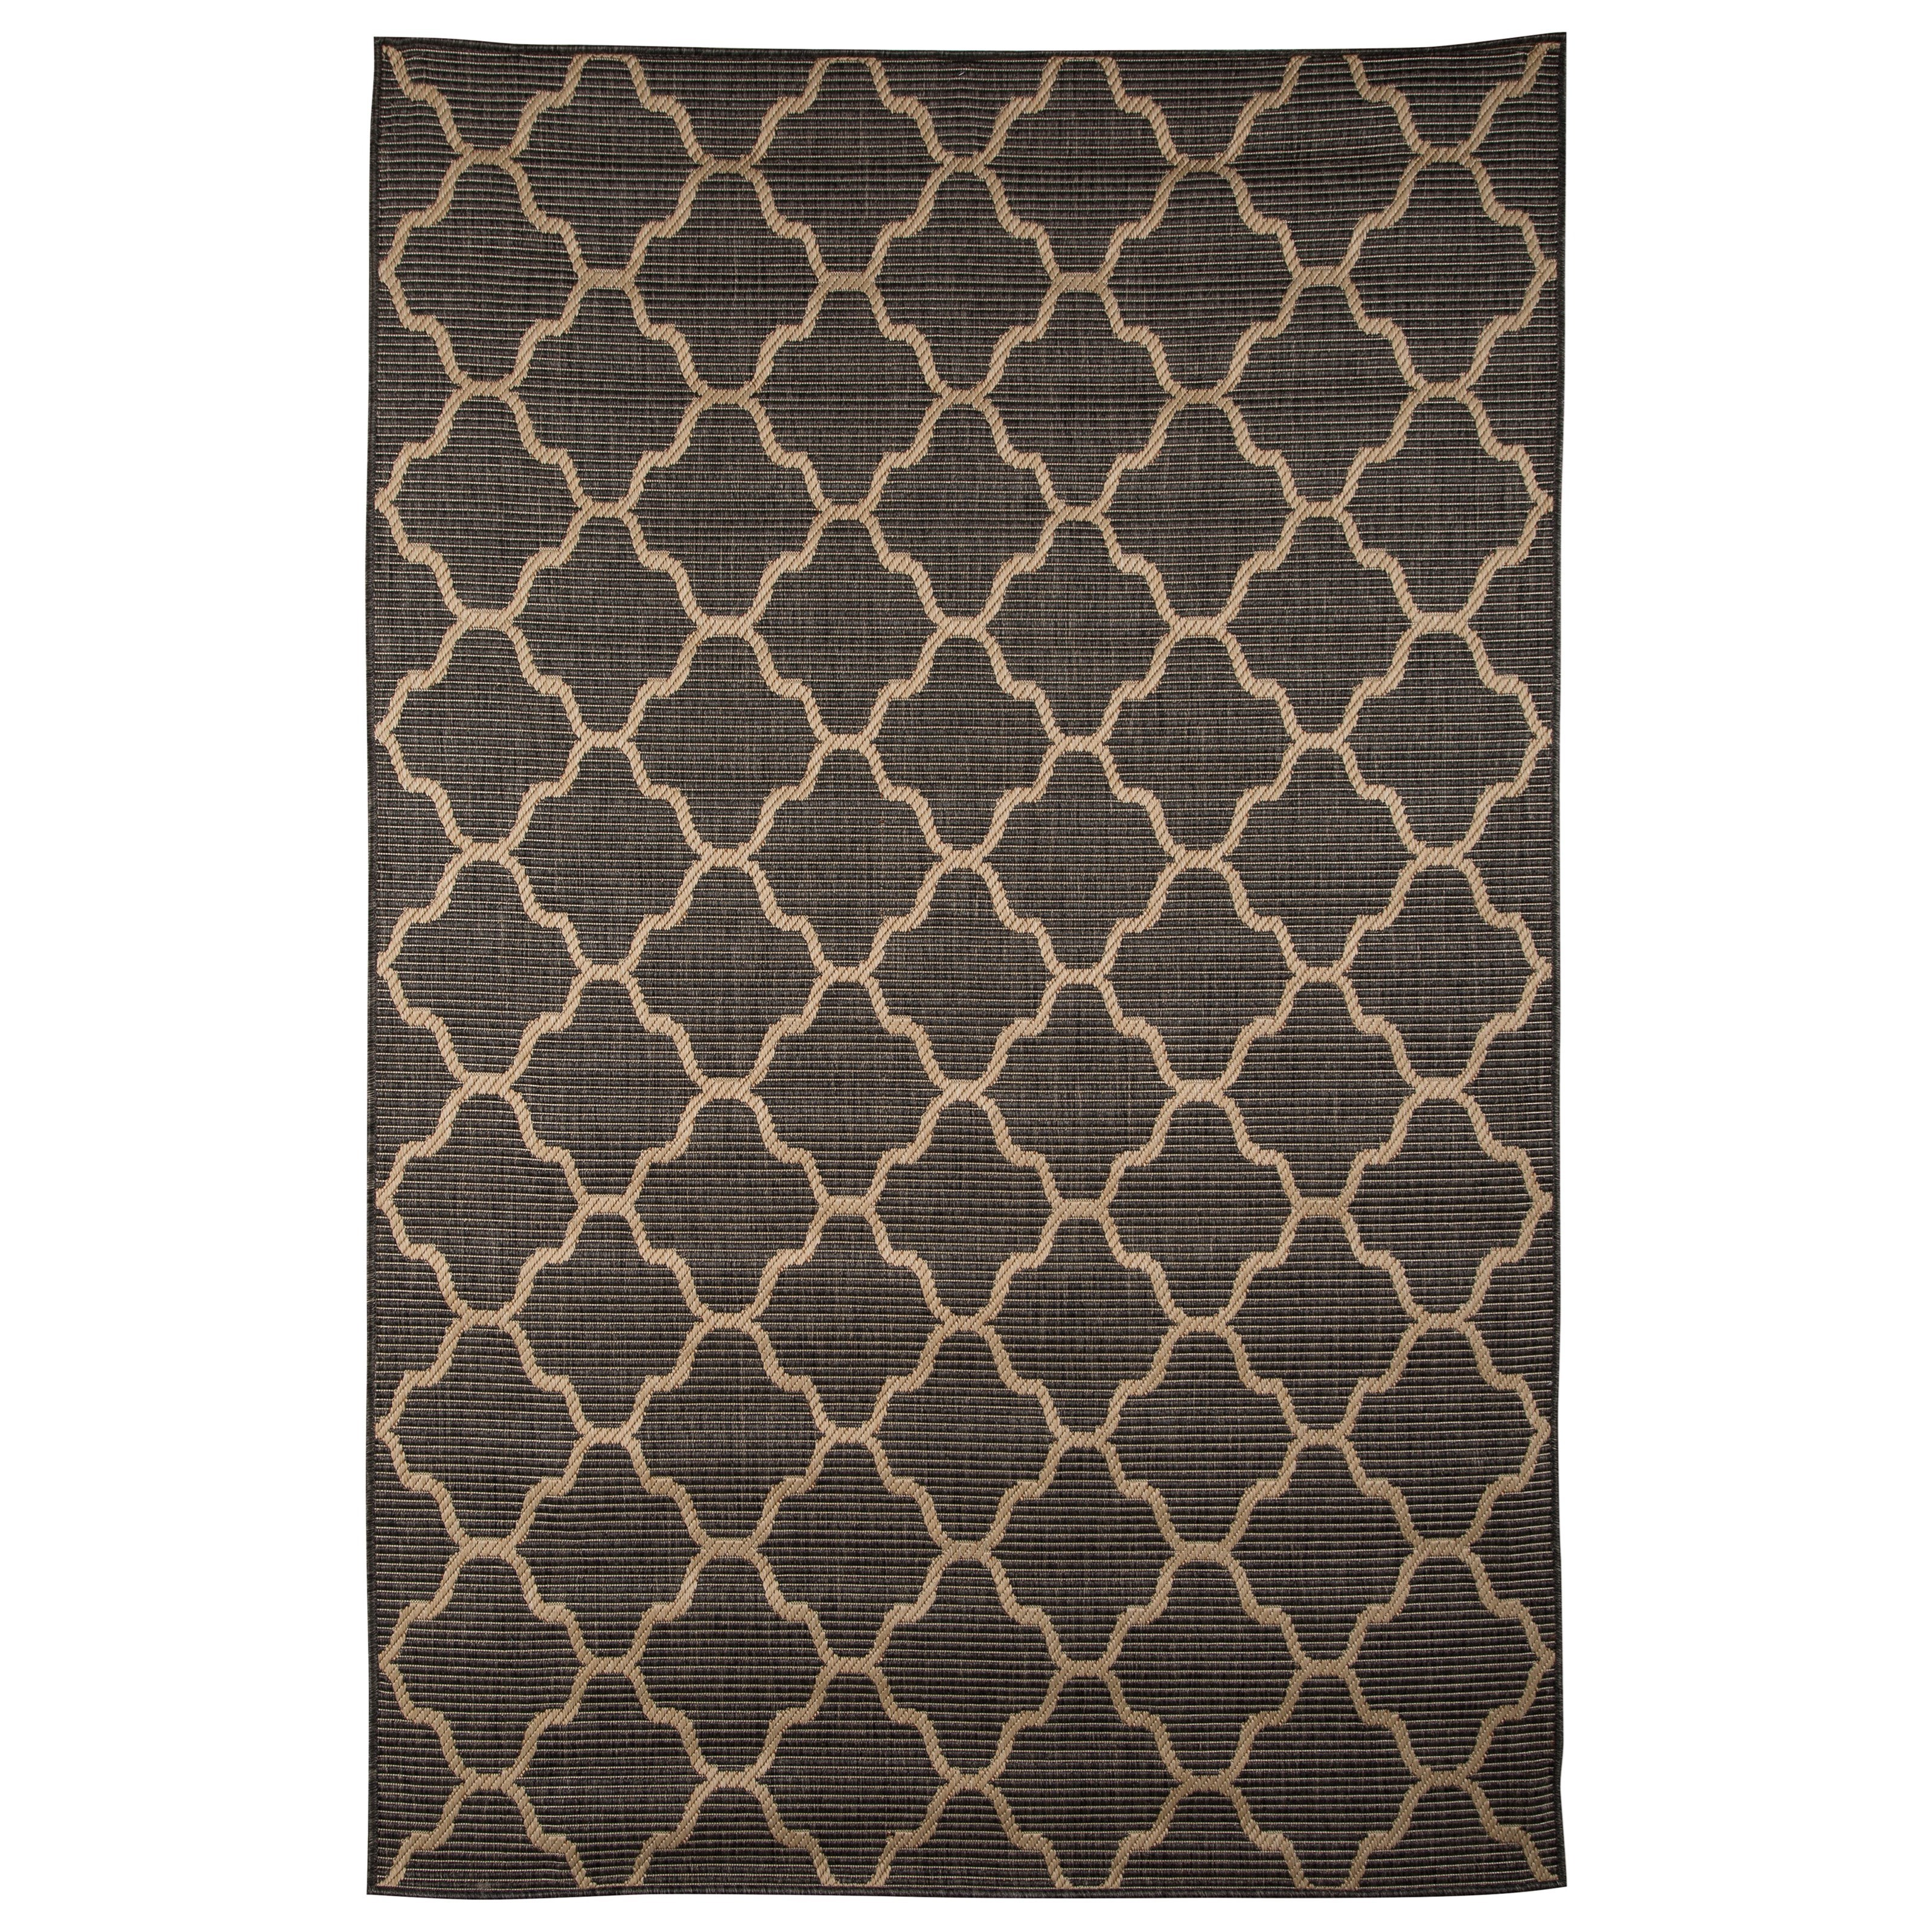 Signature Design by Ashley Transitional Area Rugs Daponte Gray Large Rug - Item Number: R400381